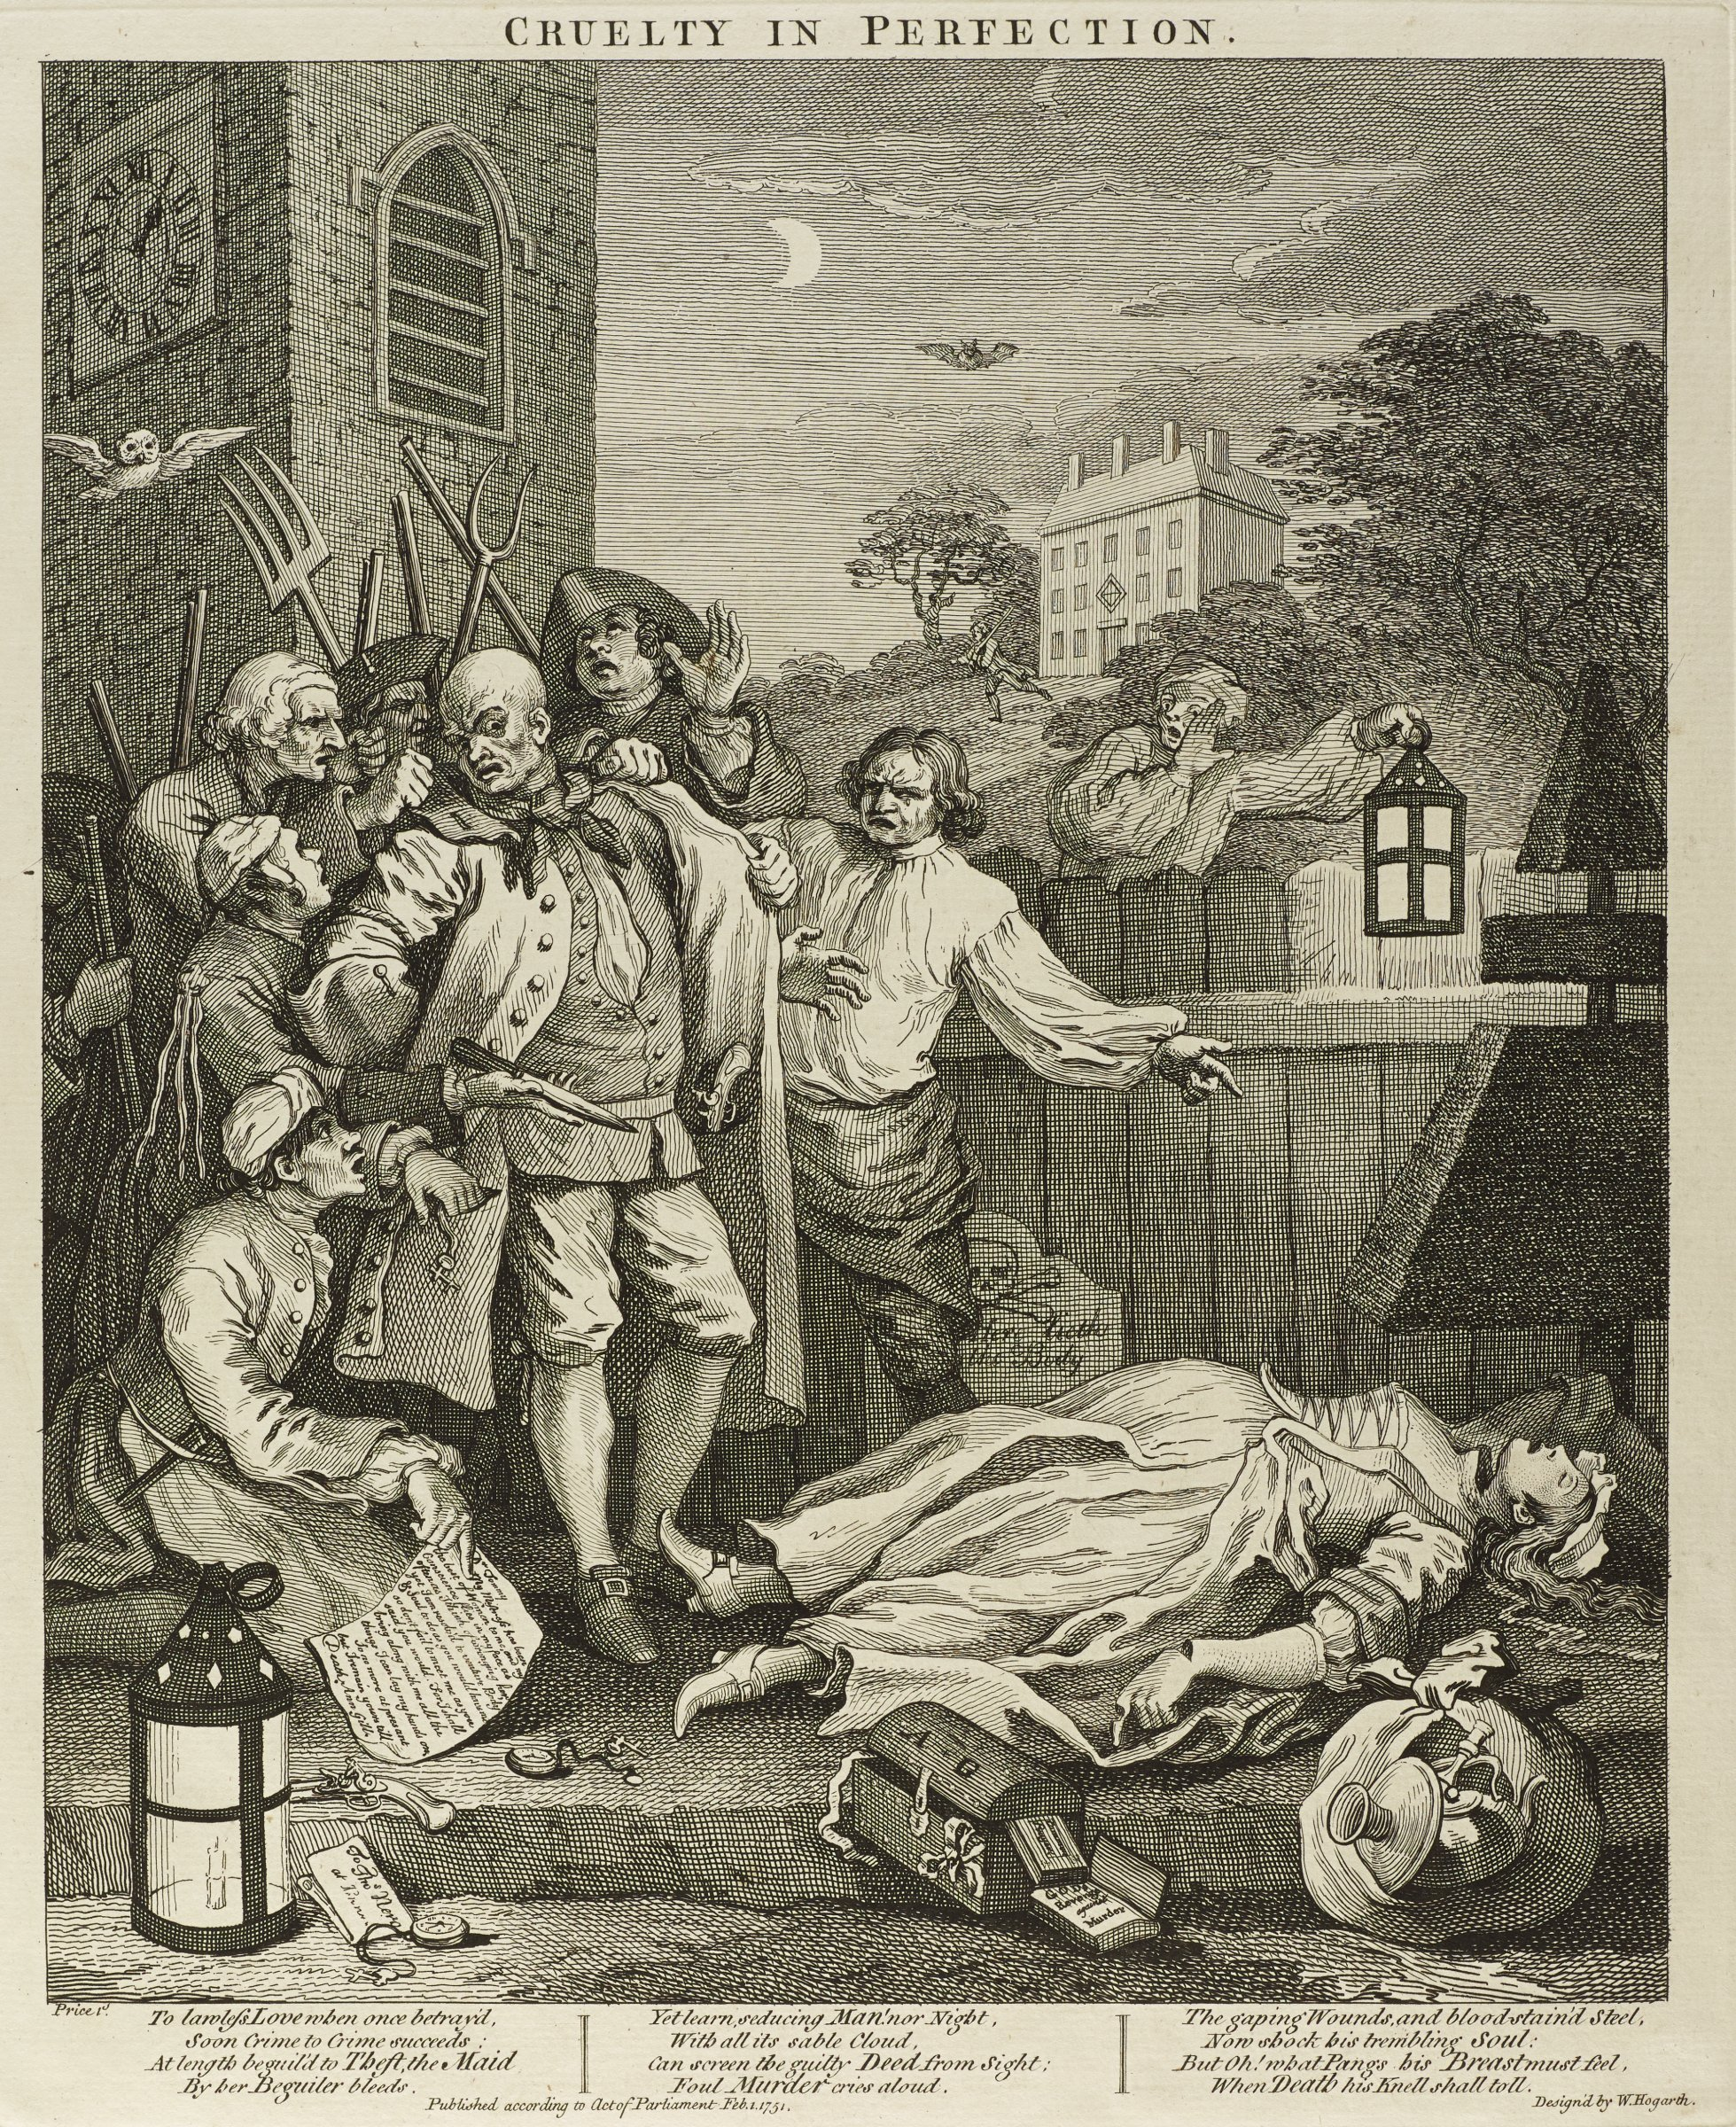 A woman lies dead on the street as a group of men with pitchforks stands over her. Hogarth published this set to alert his contemporaries about the cruel treatment that animals had to endure in eighteenth century England.